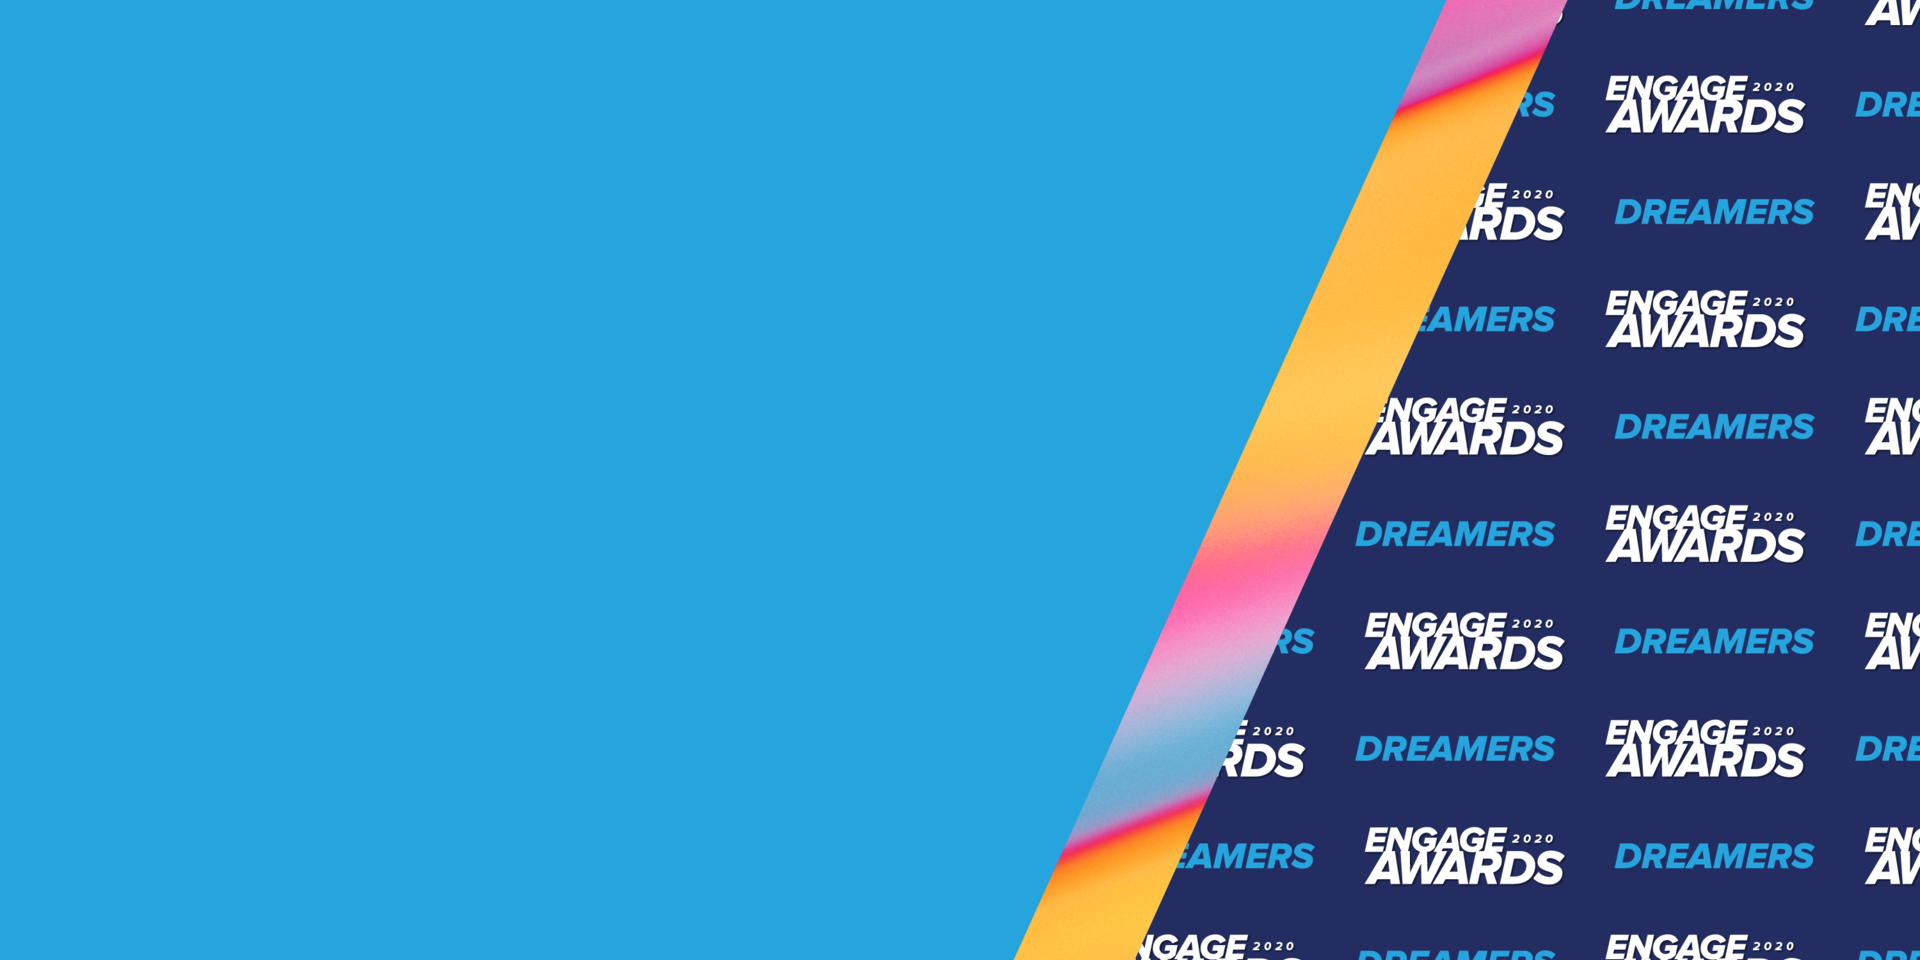 Acquia Engage Awards 2020 Dreamers Banner